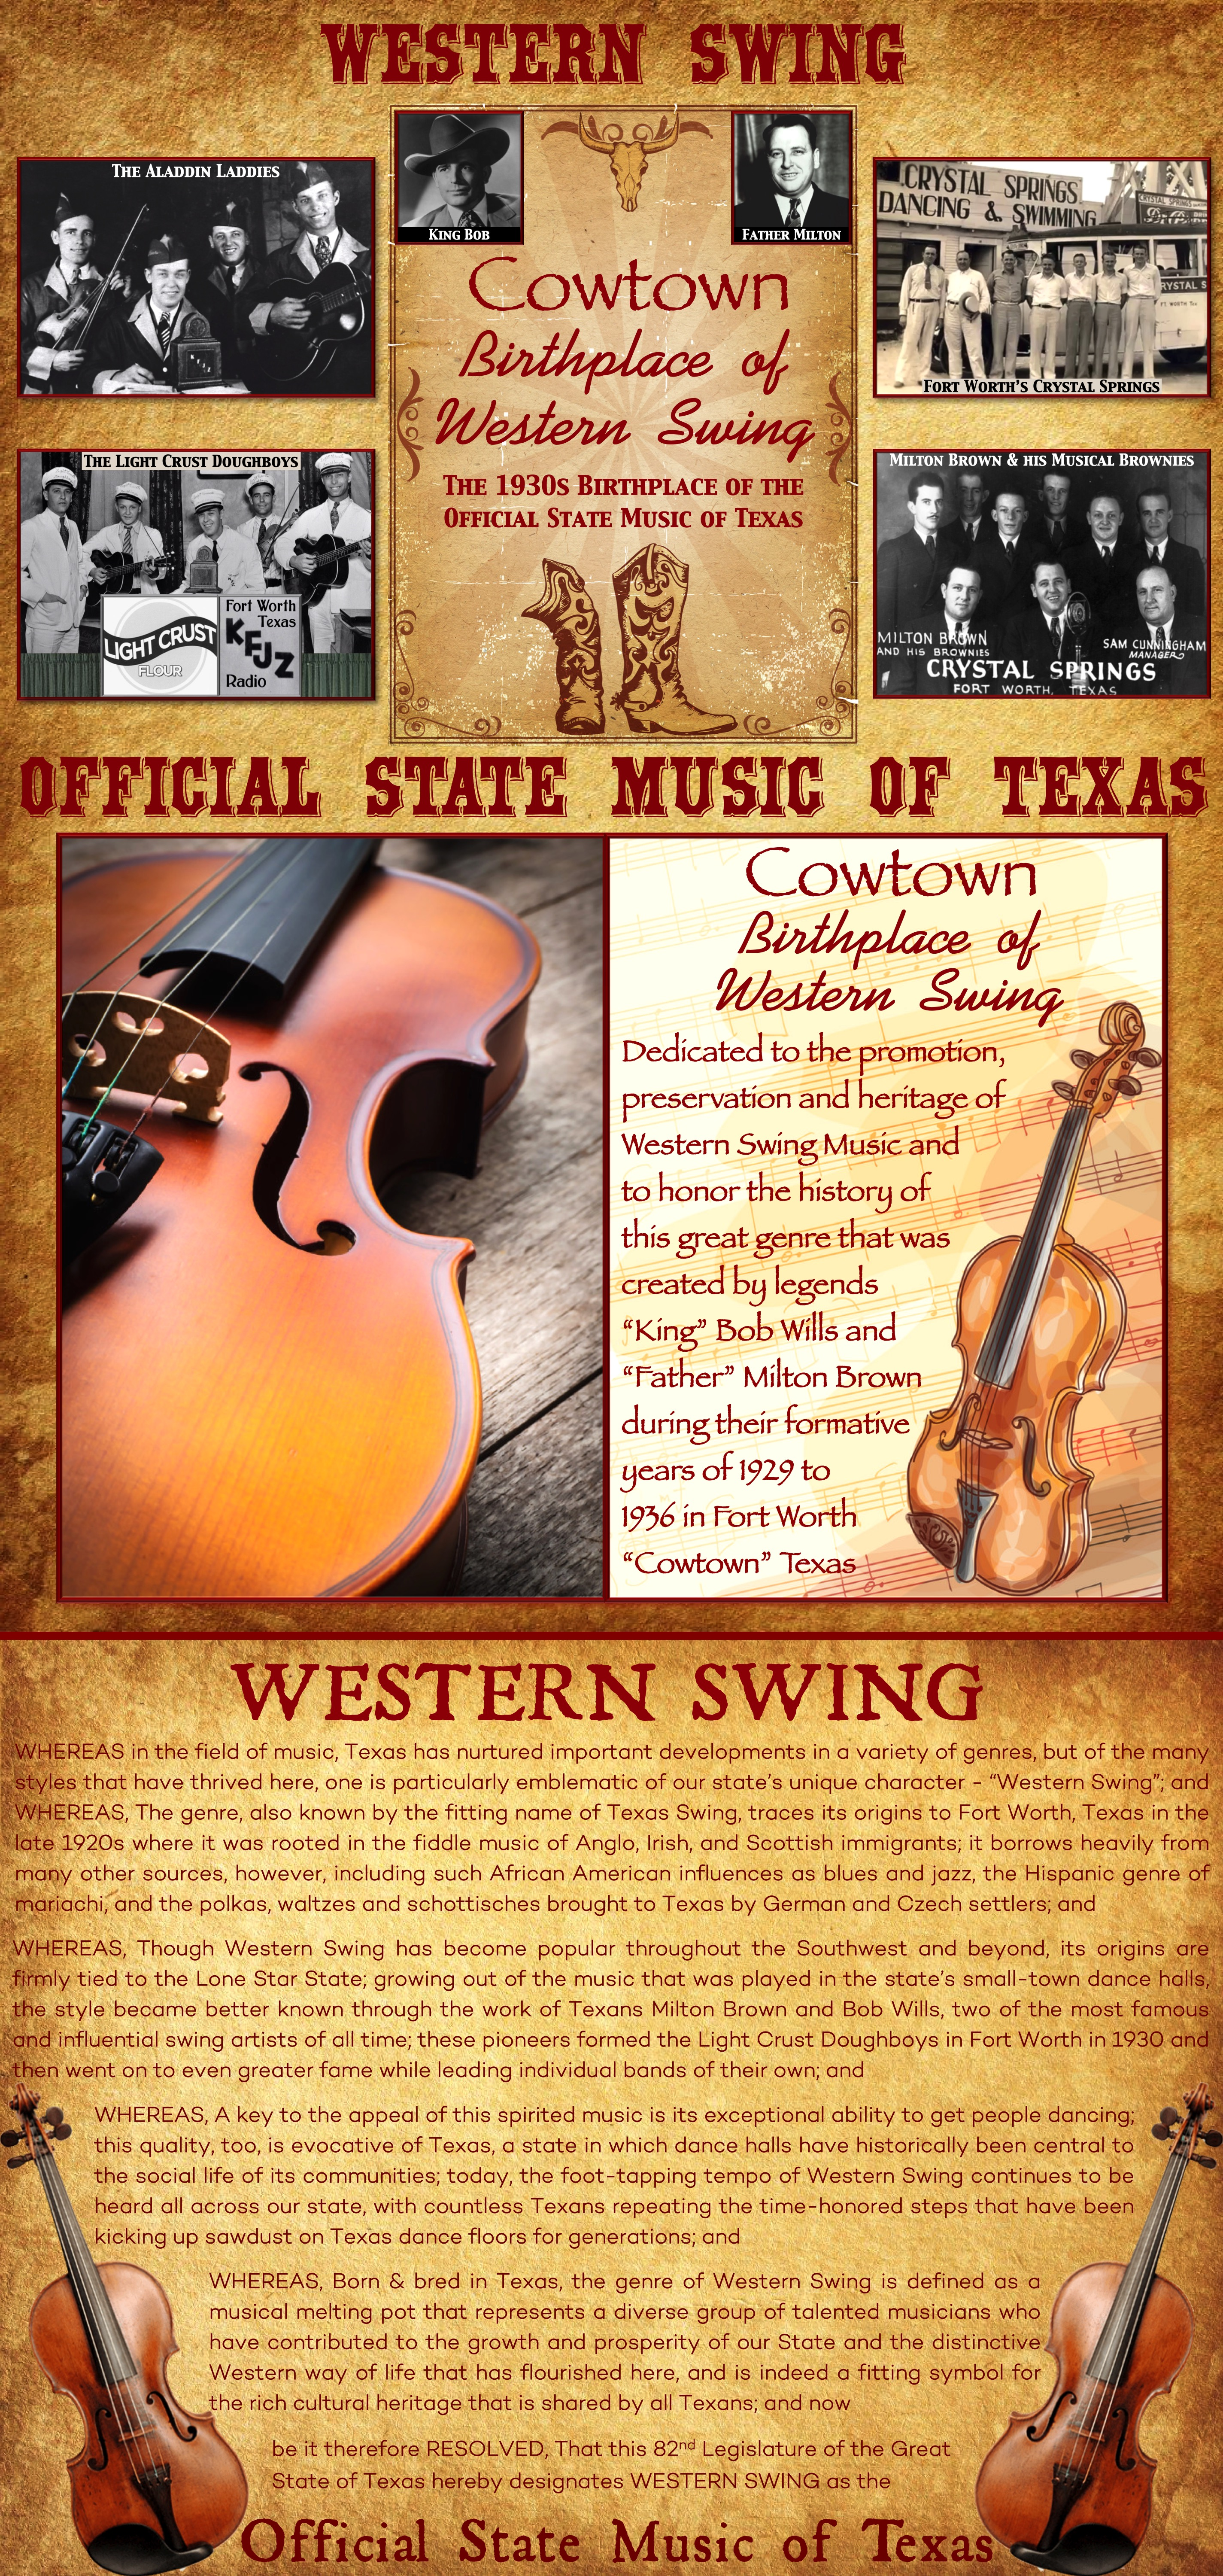 Cowtown Birthplace of Western Swing